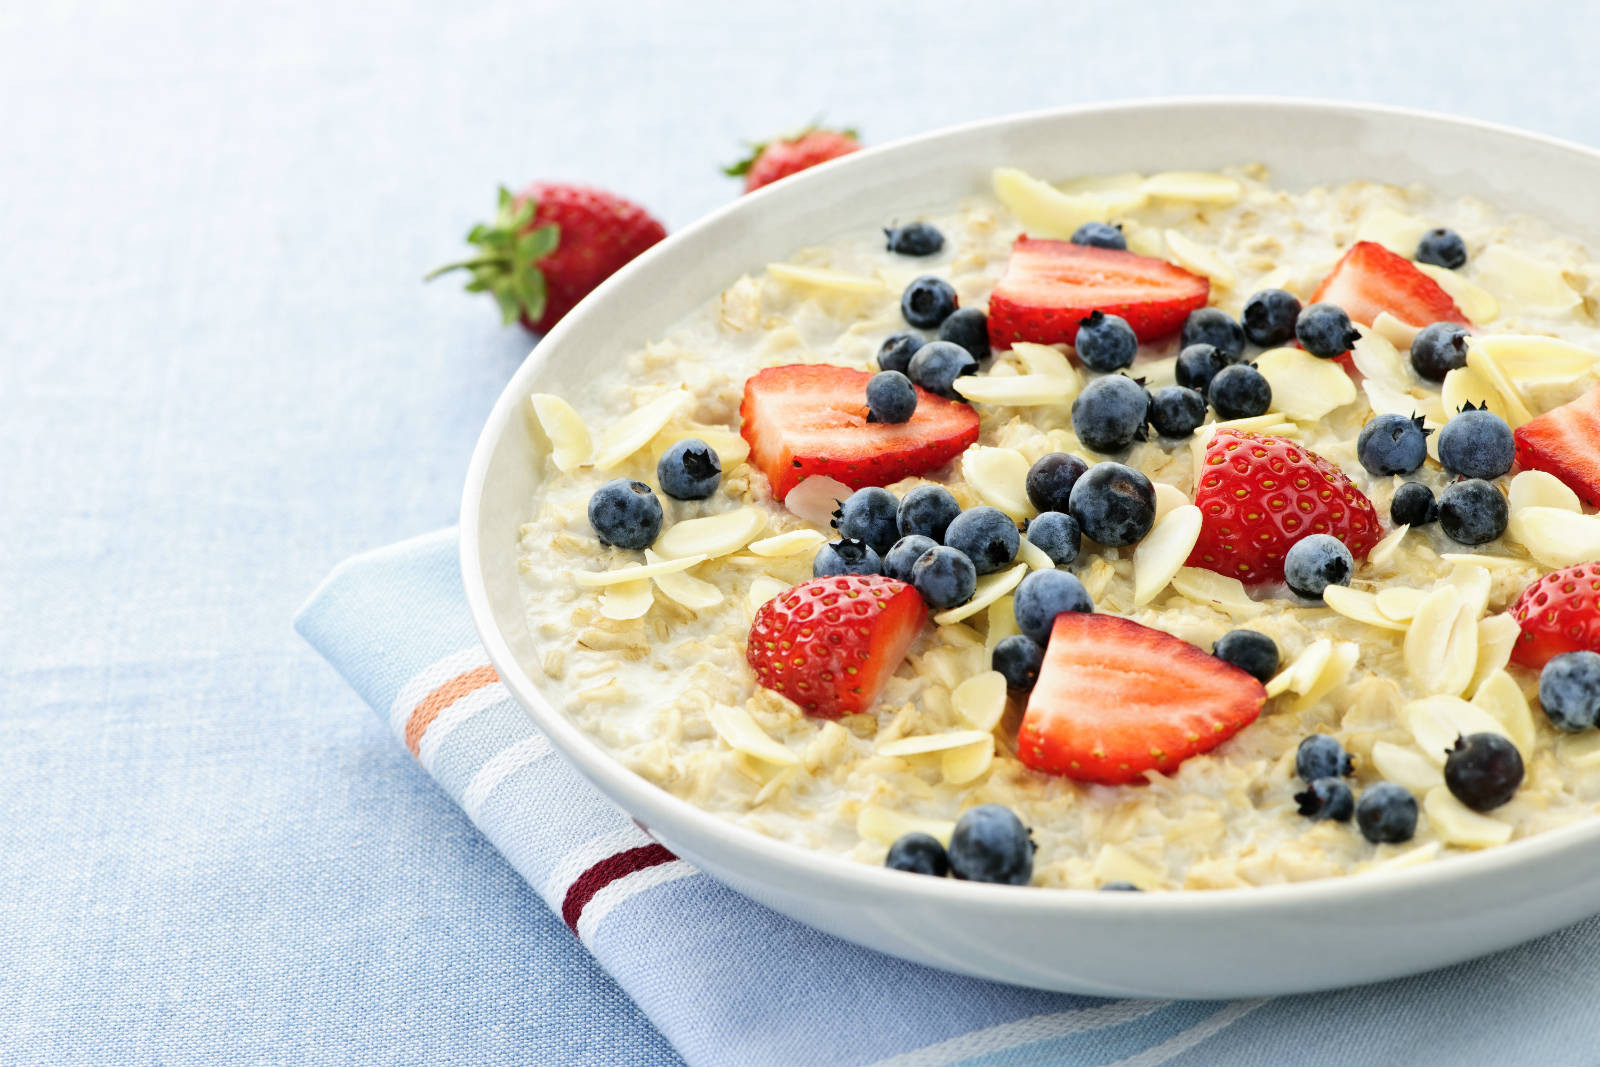 Healthy Oatmeal Ideas For Breakfast  Breakfast Ideas for Weight Loss Read This & Never Start